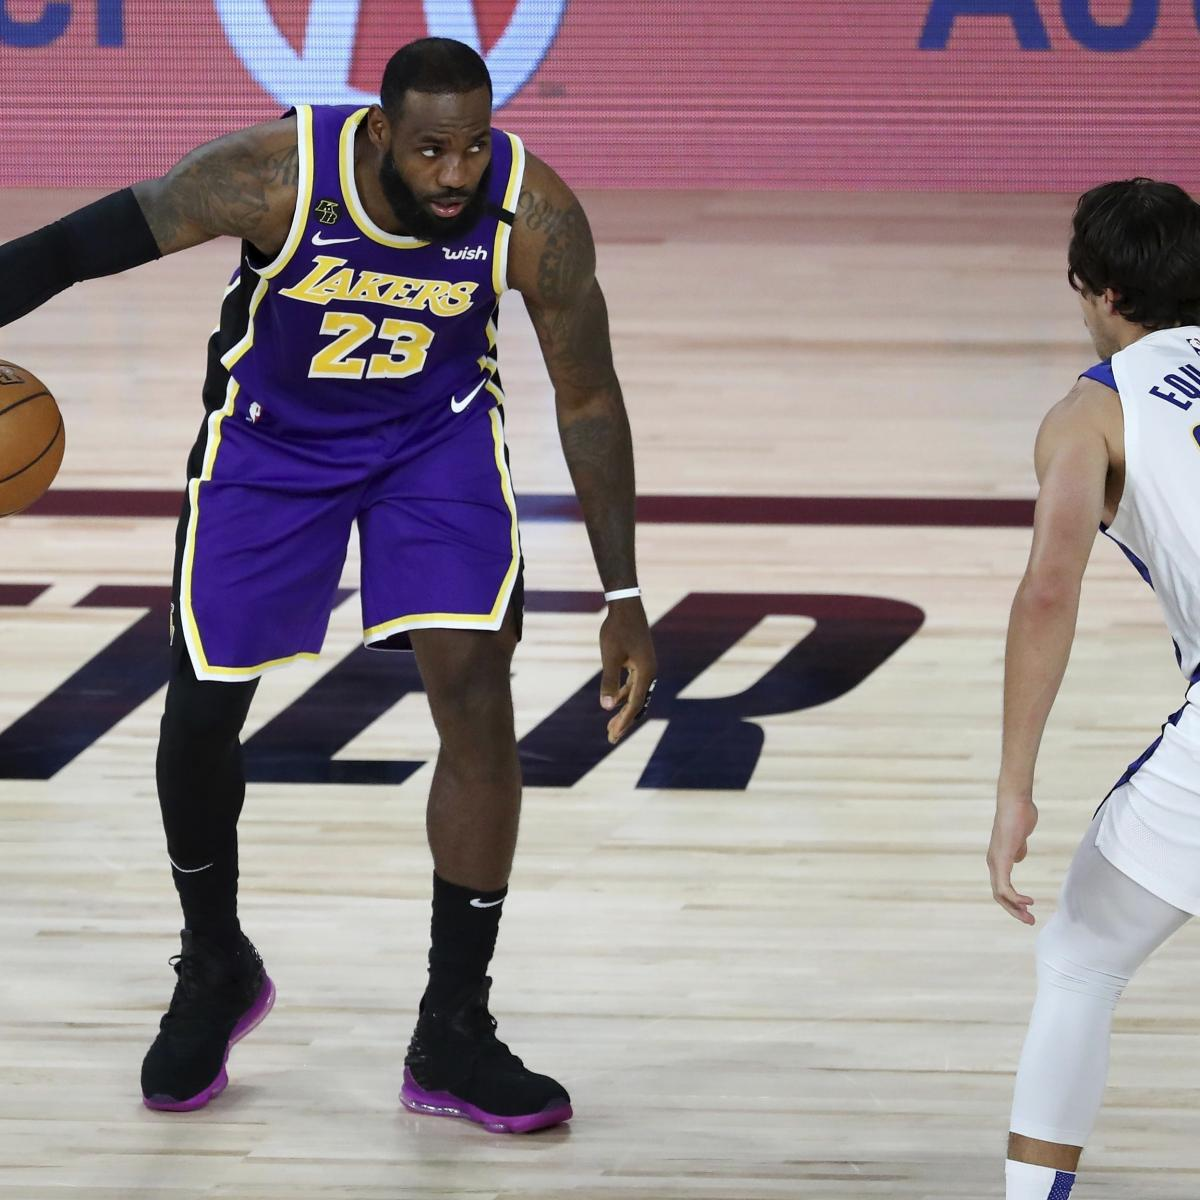 NBA Playoffs 2020: Postseason Schedule, Bracket Format and Odds